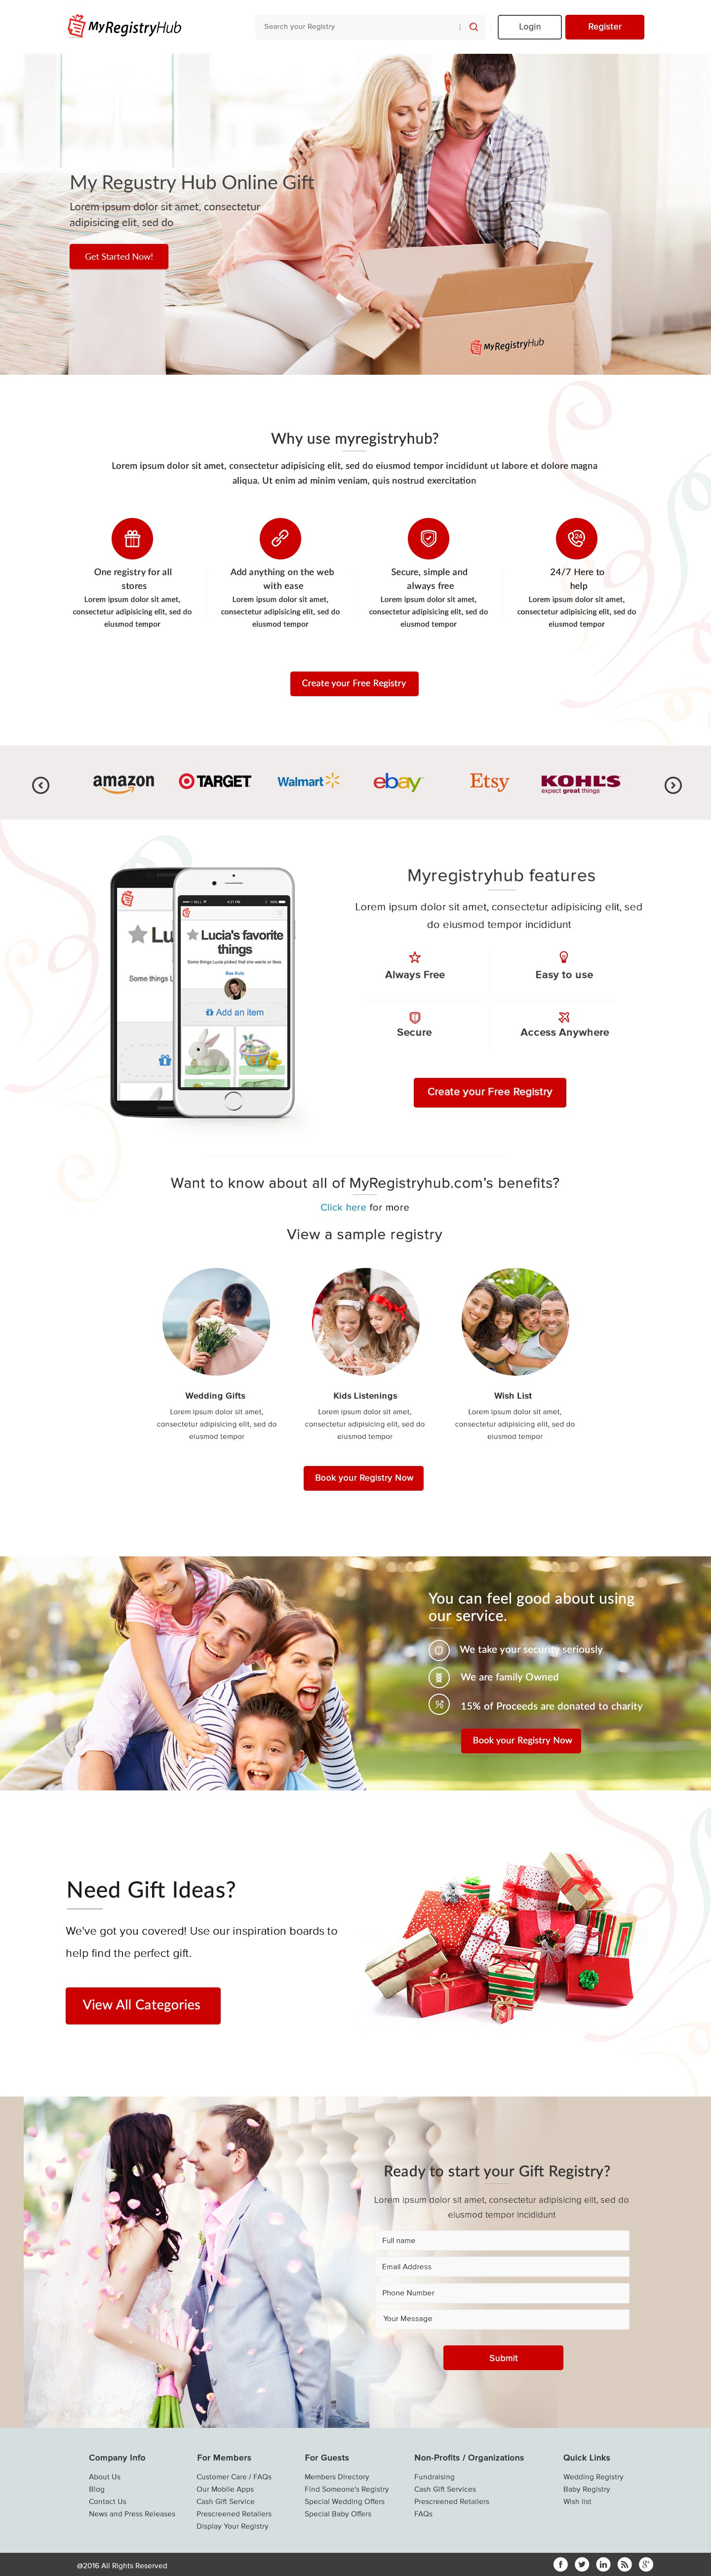 My Registry Hub needs an awesome new landing page